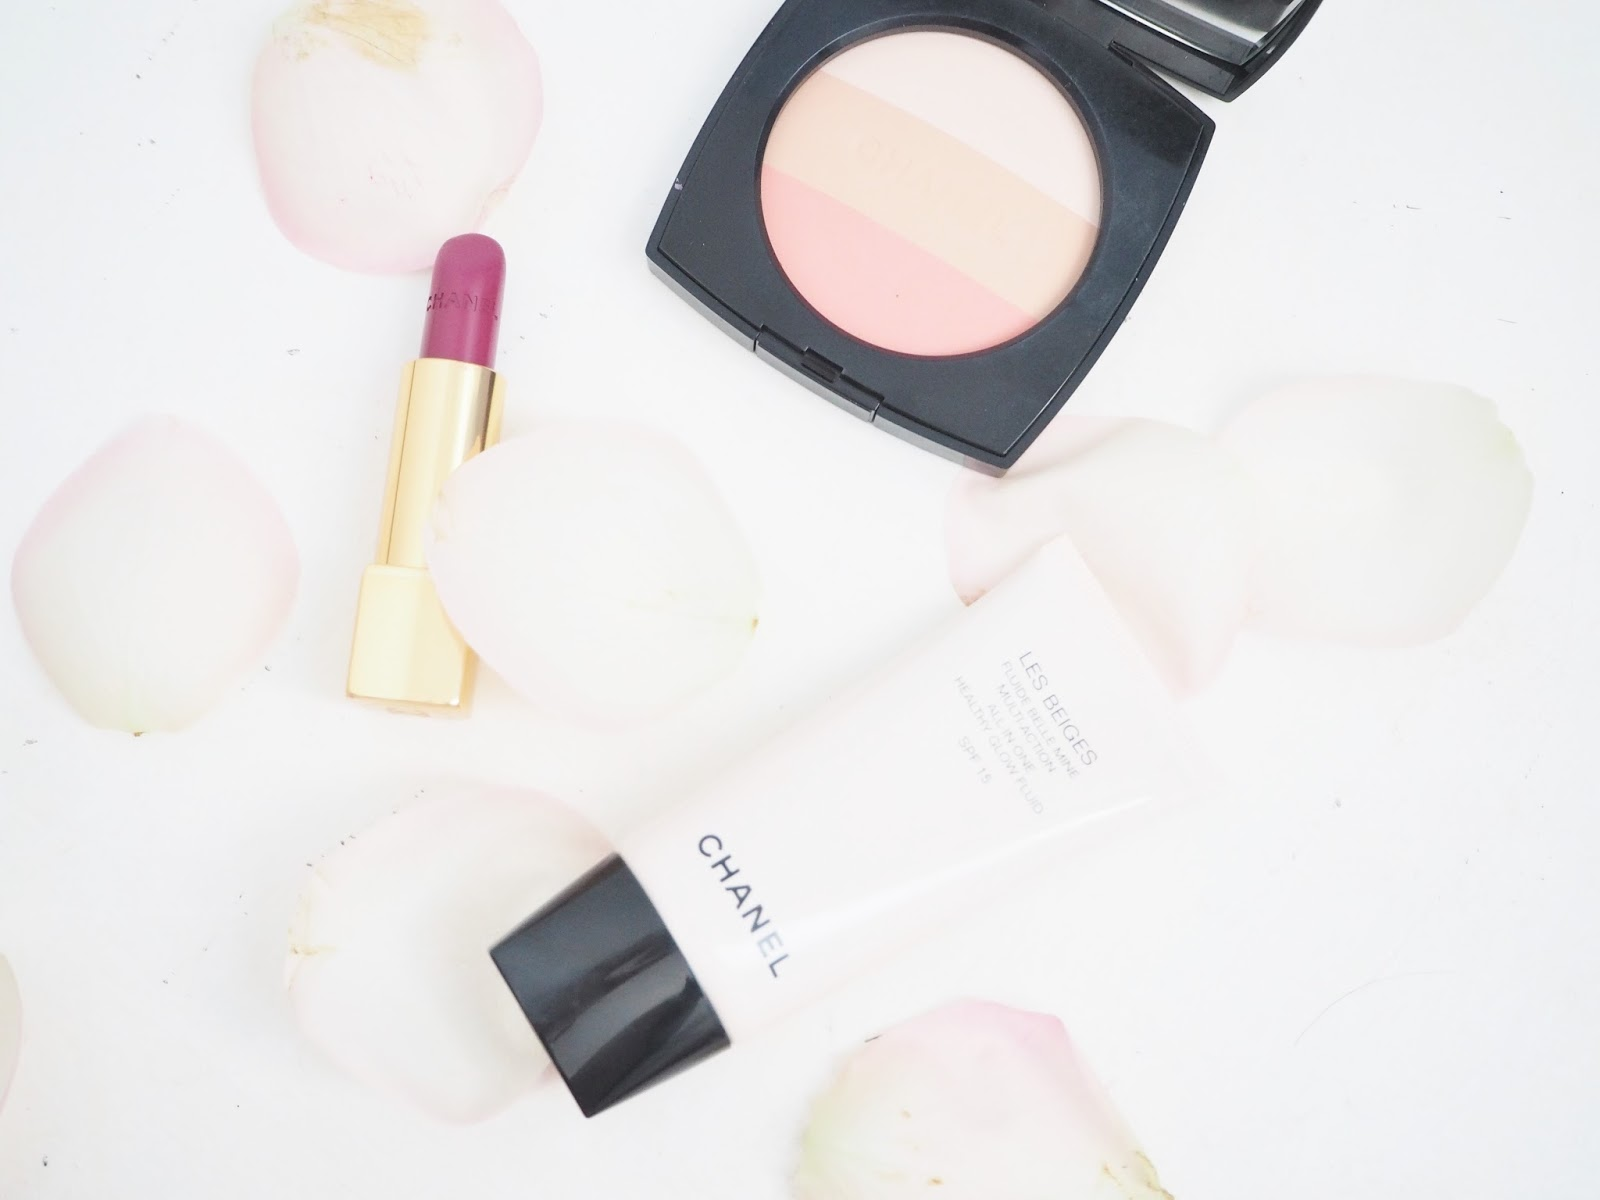 chanel - chanellipstick - makeup - chanelreview